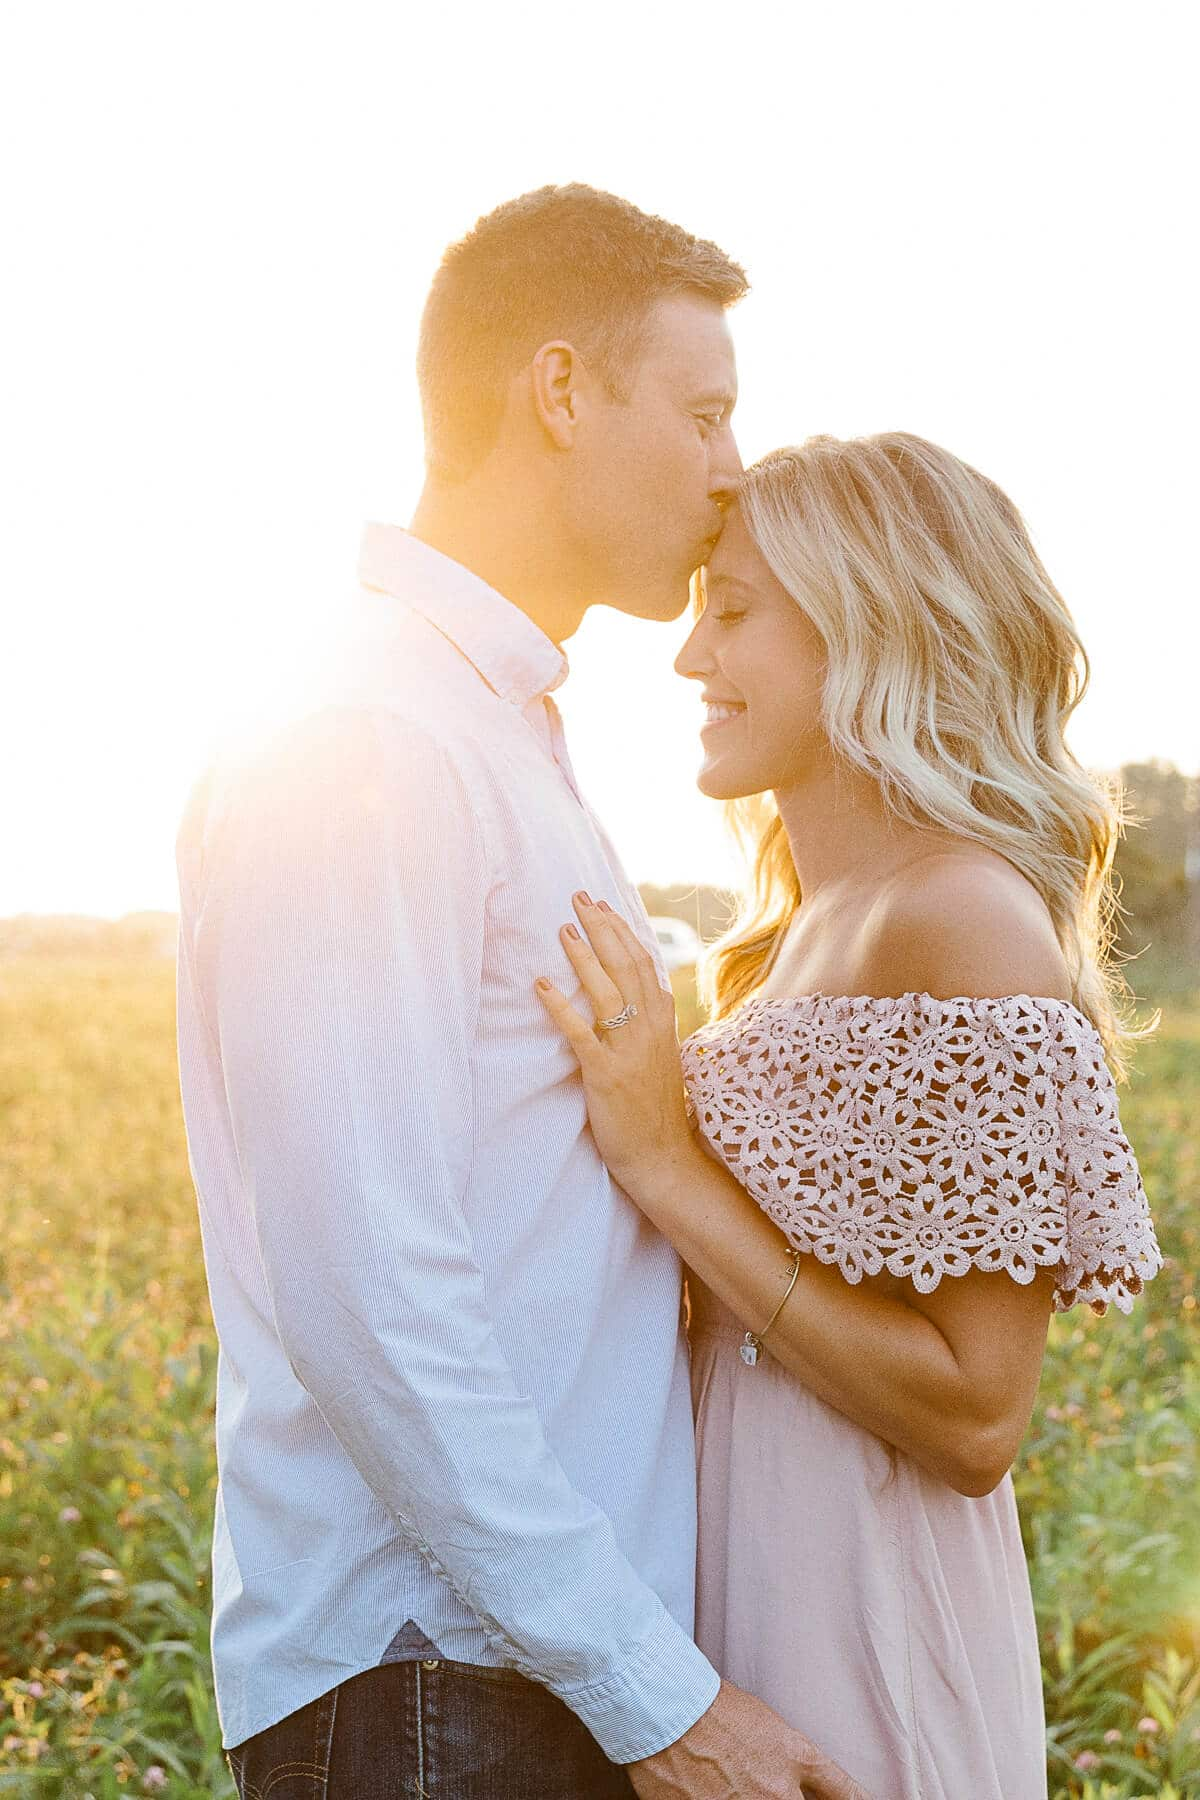 Brad + Alyssa couples photography poses! This anniversary couples sessions was so fun during golden hour. It was an intimate and romantic summer photography session for a sweet couple. Use this post to get couples pose ideas!